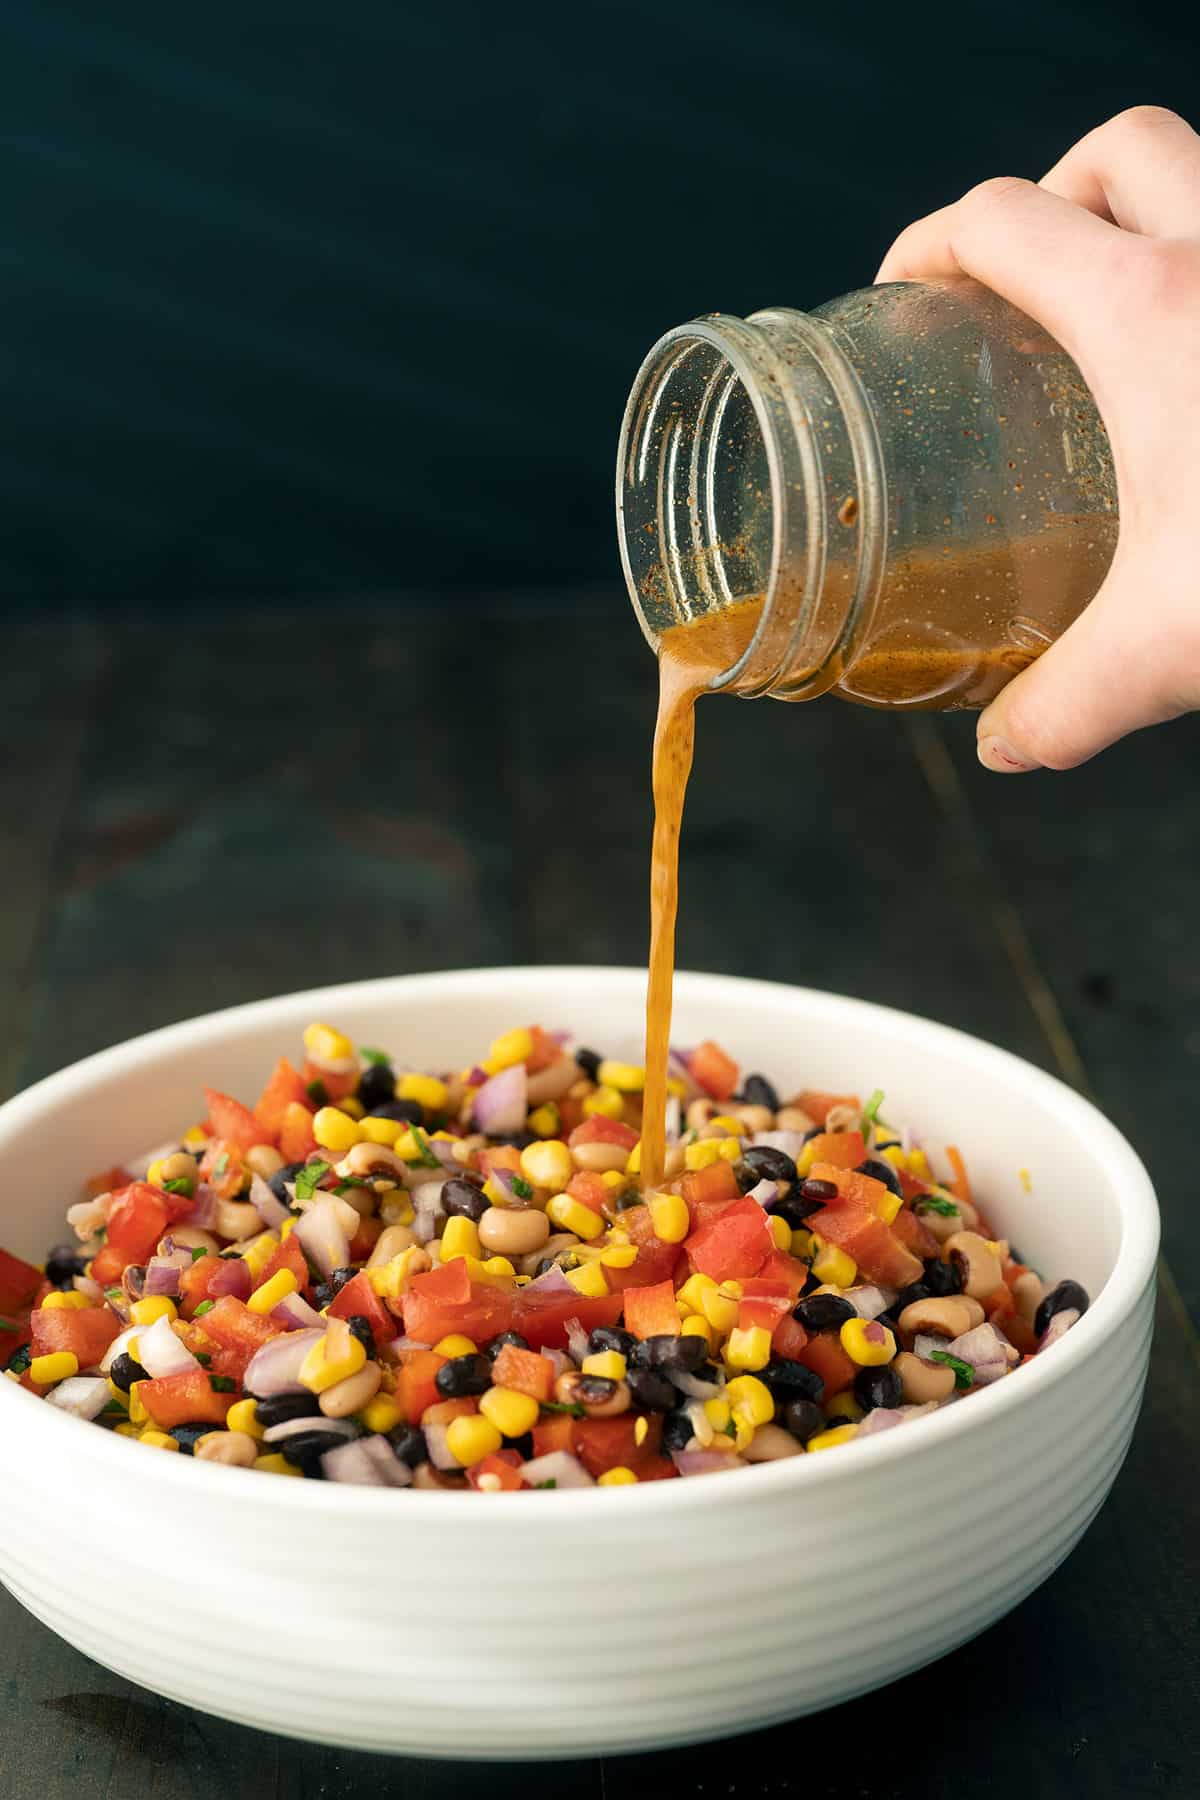 Spicy vinaigrette dressing being poured over a bowl of cowboy caviar.